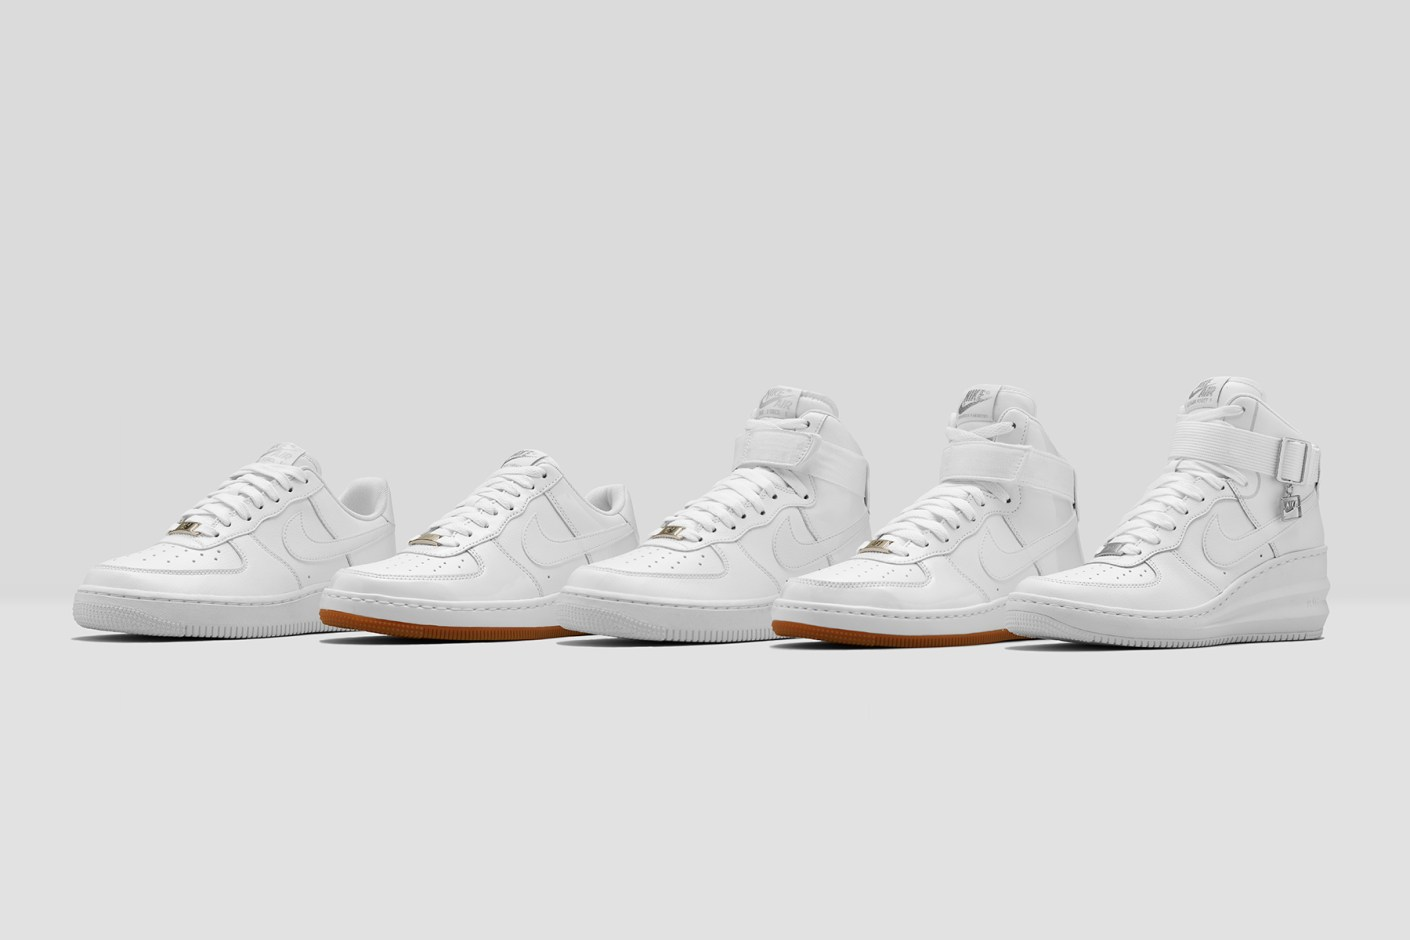 Image of Nike Sportswear WMNS 2014 Air Force 1 Collection